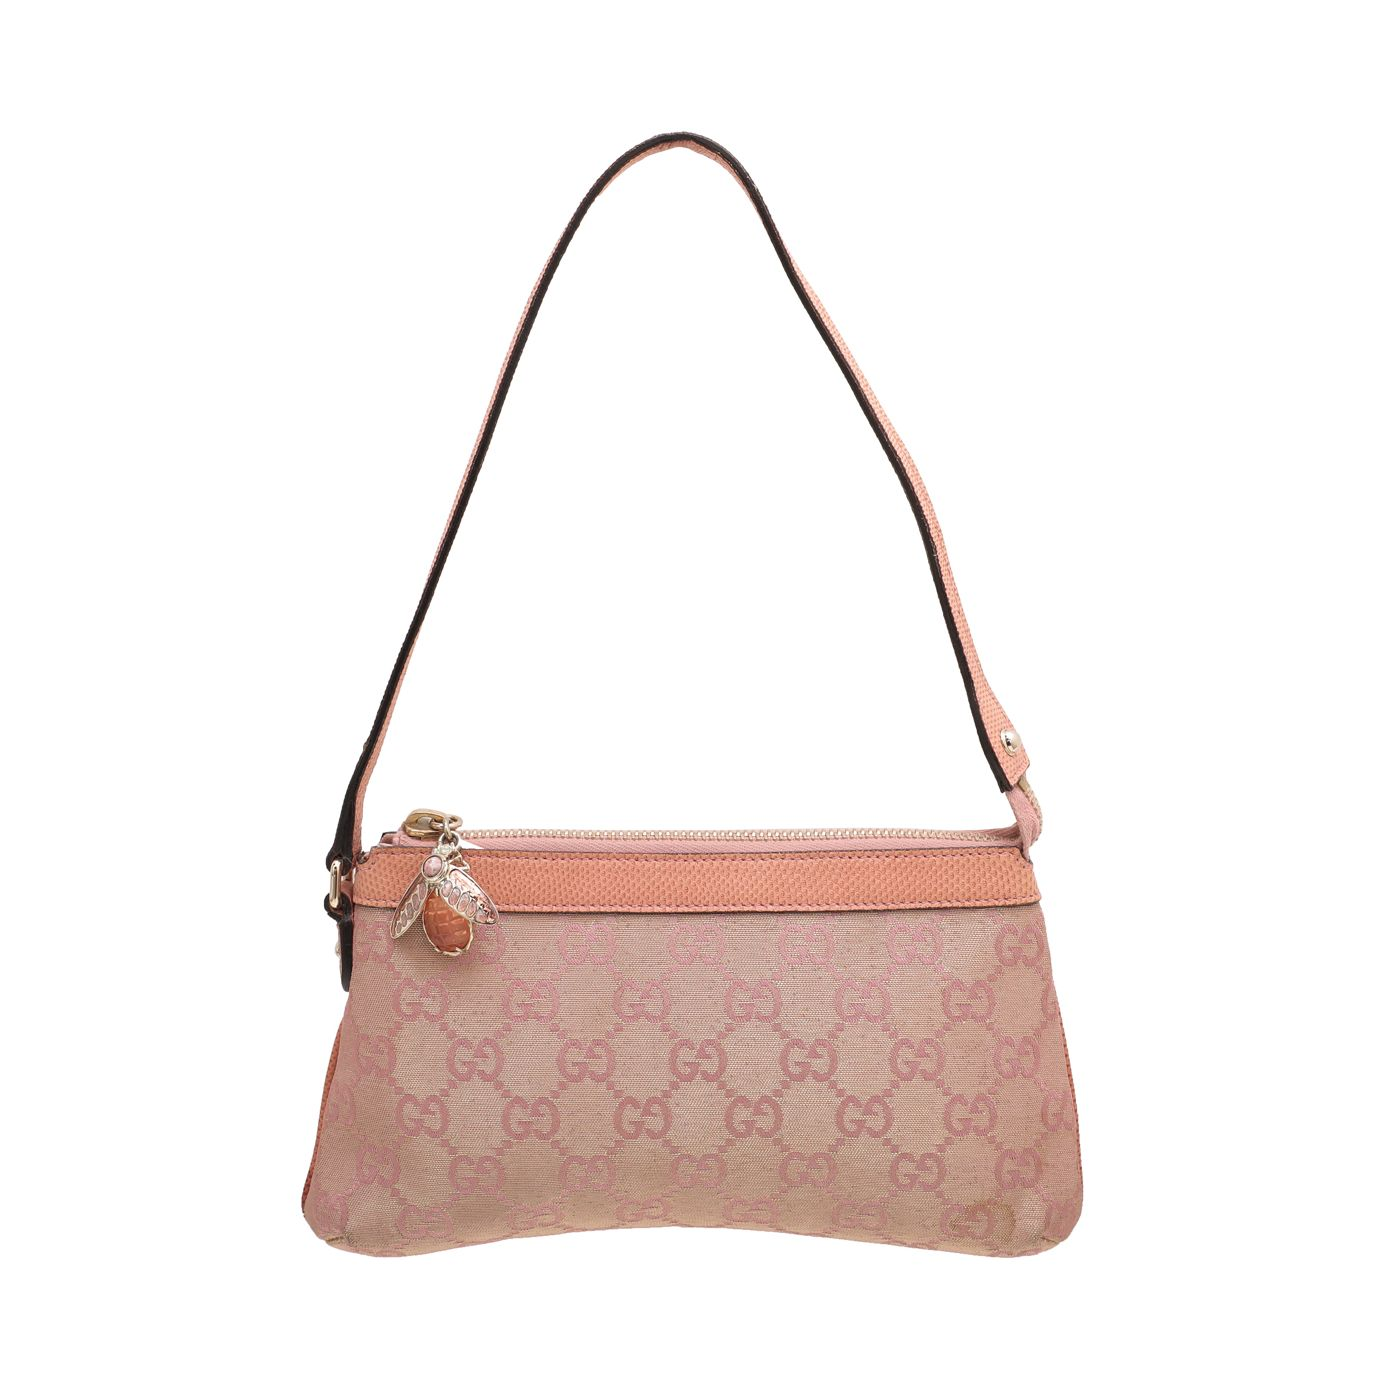 Gucci Pink Bumble Bee Charm Pochette Bag